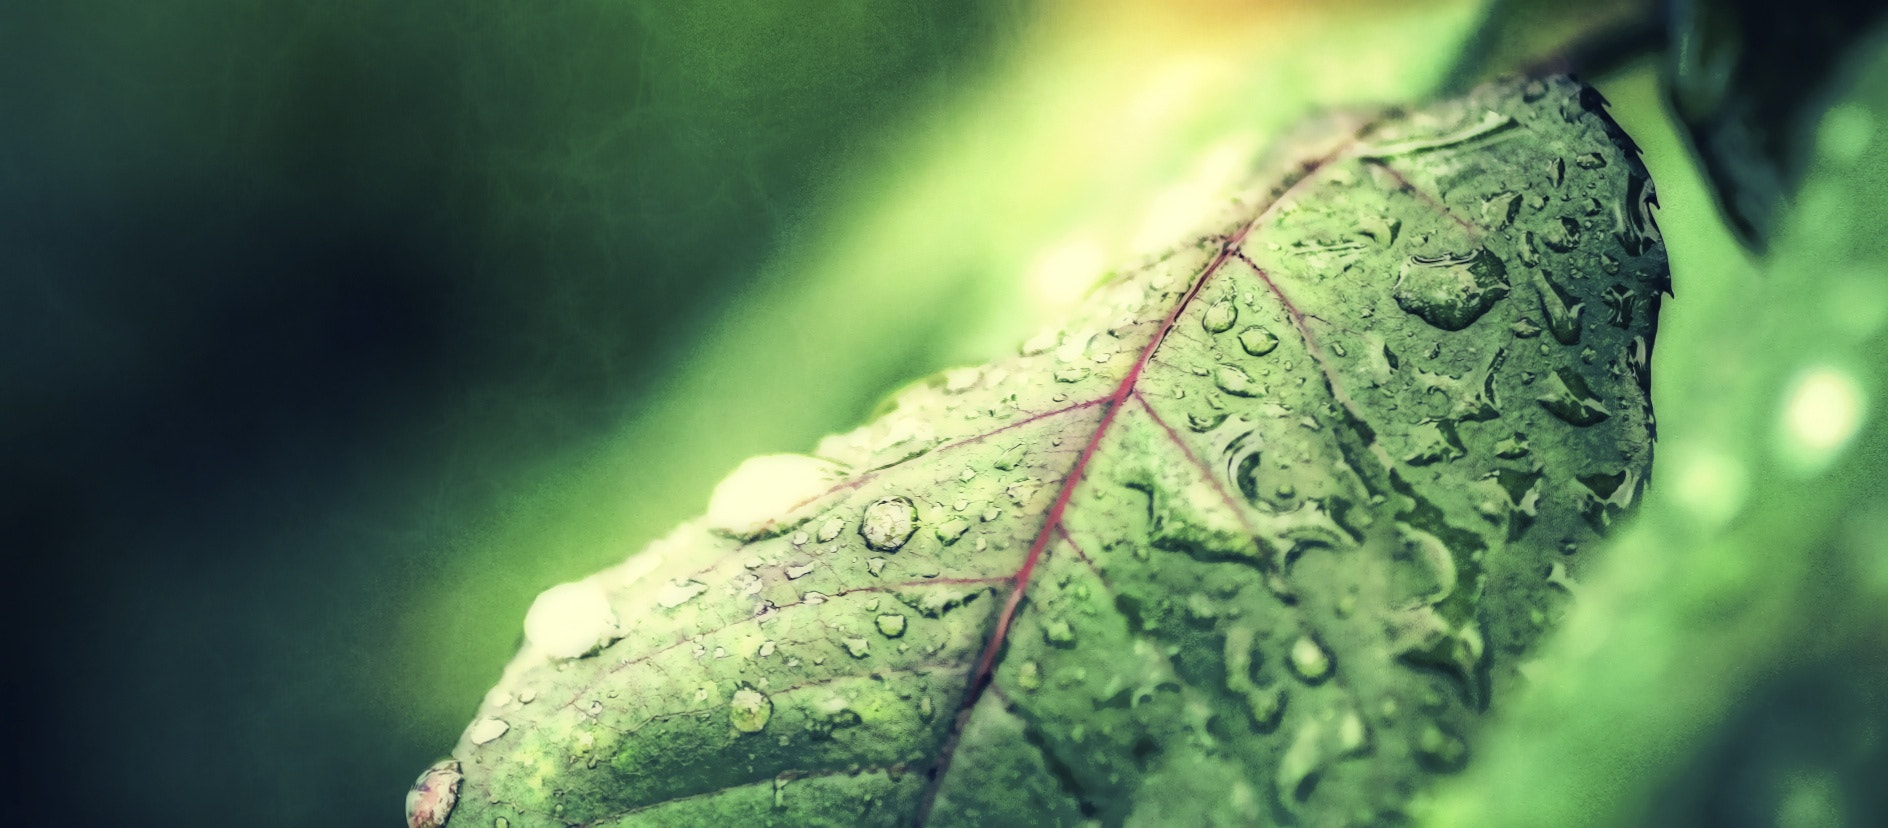 Photograph Green Wet Crazy World by Mauricio Lima on 500px